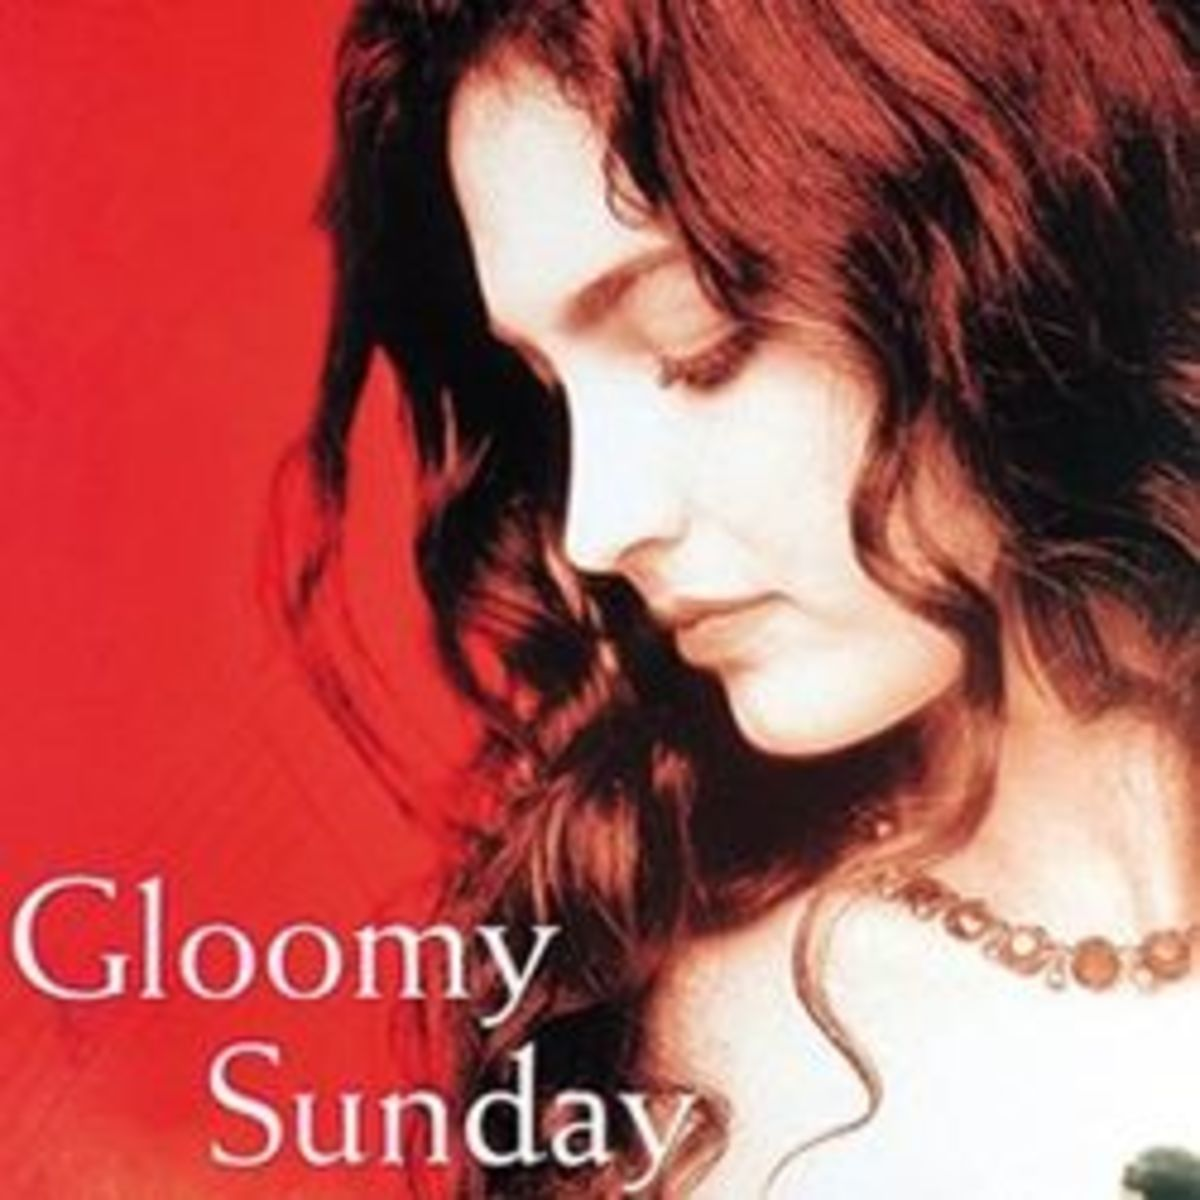 Gloomy Sunday  Movie (1999)